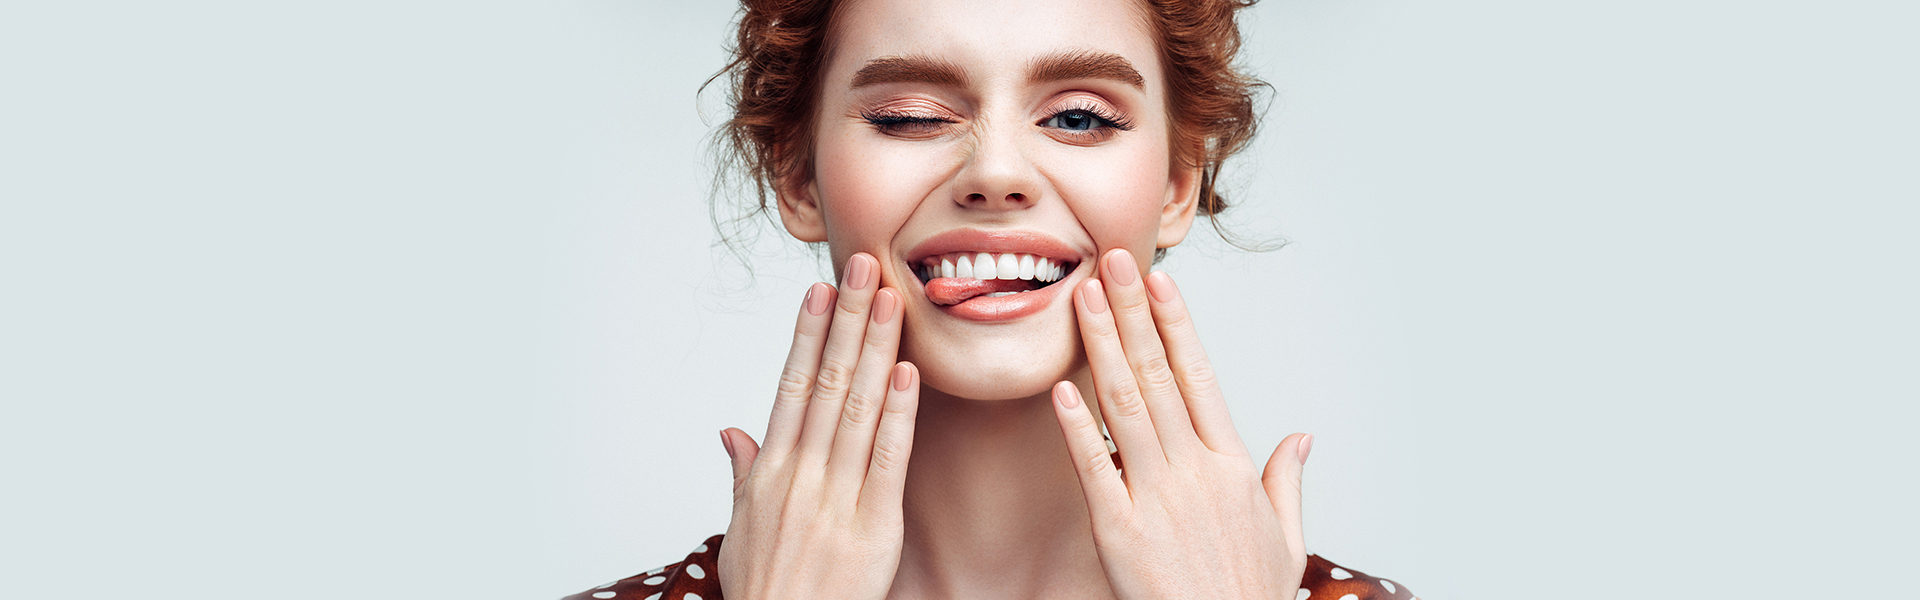 Need Straight Teeth Without Metal Braces?